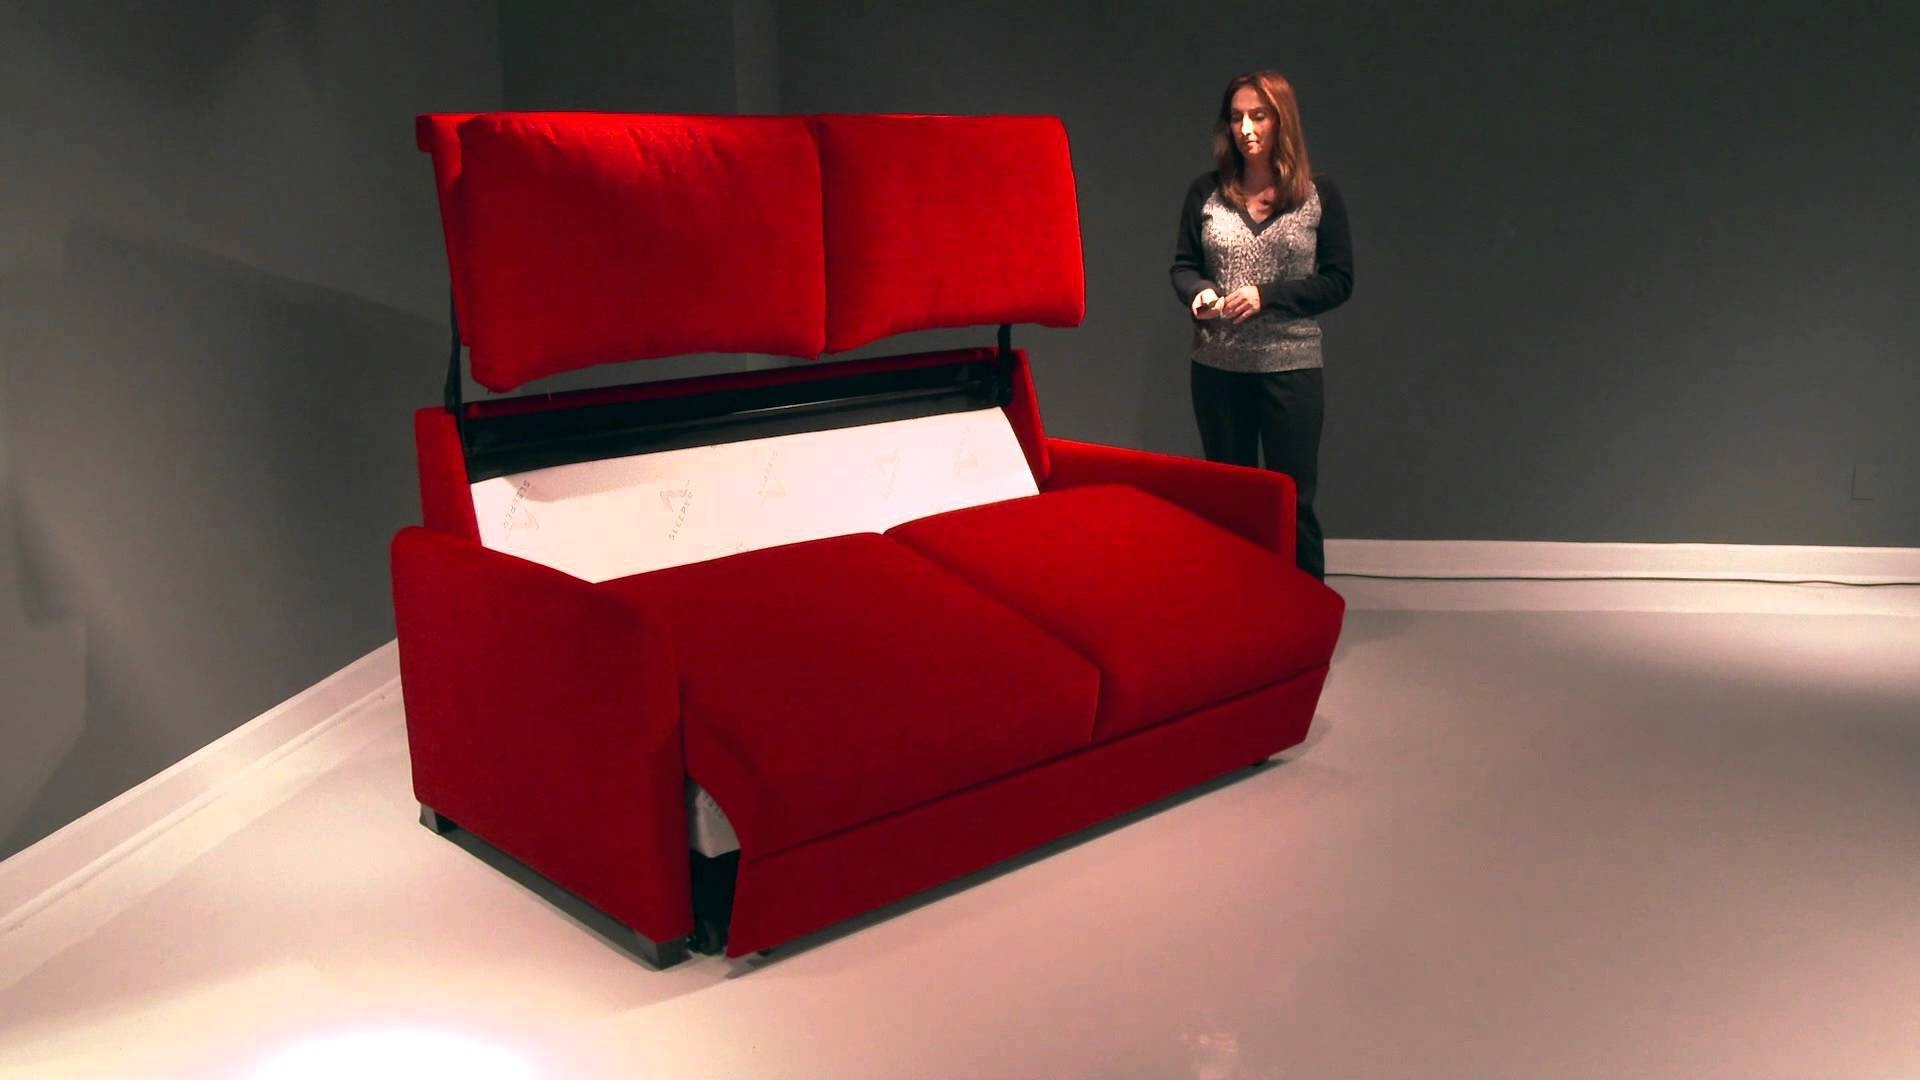 Paragon Power Sleeper Sofas San Diego - Youtube throughout San Diego Sleeper Sofas (Image 6 of 15)